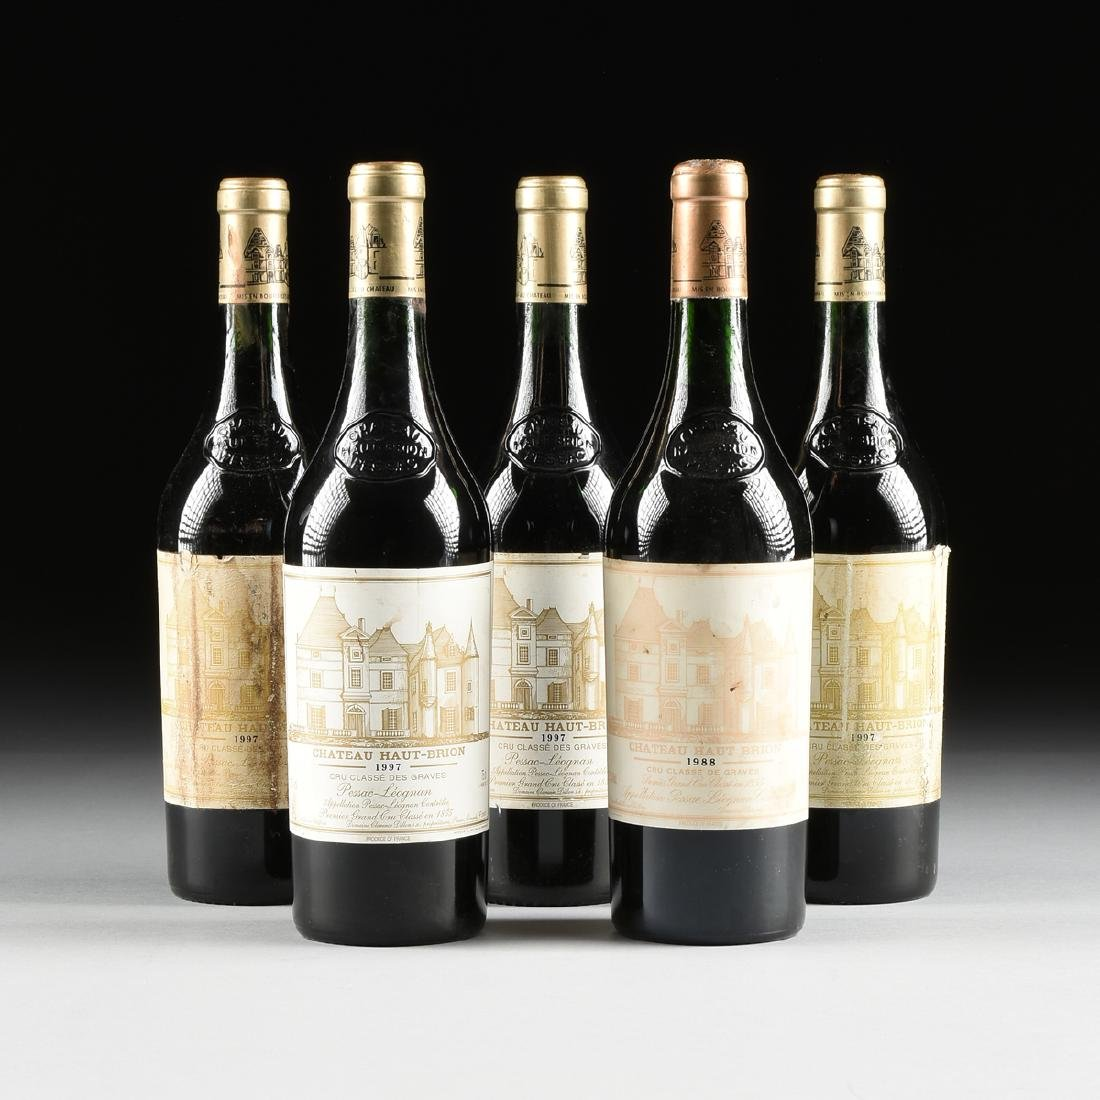 A GROUP OF ONE 1998 AND FOUR 1997 BOTTLES OF CHÂTEAU